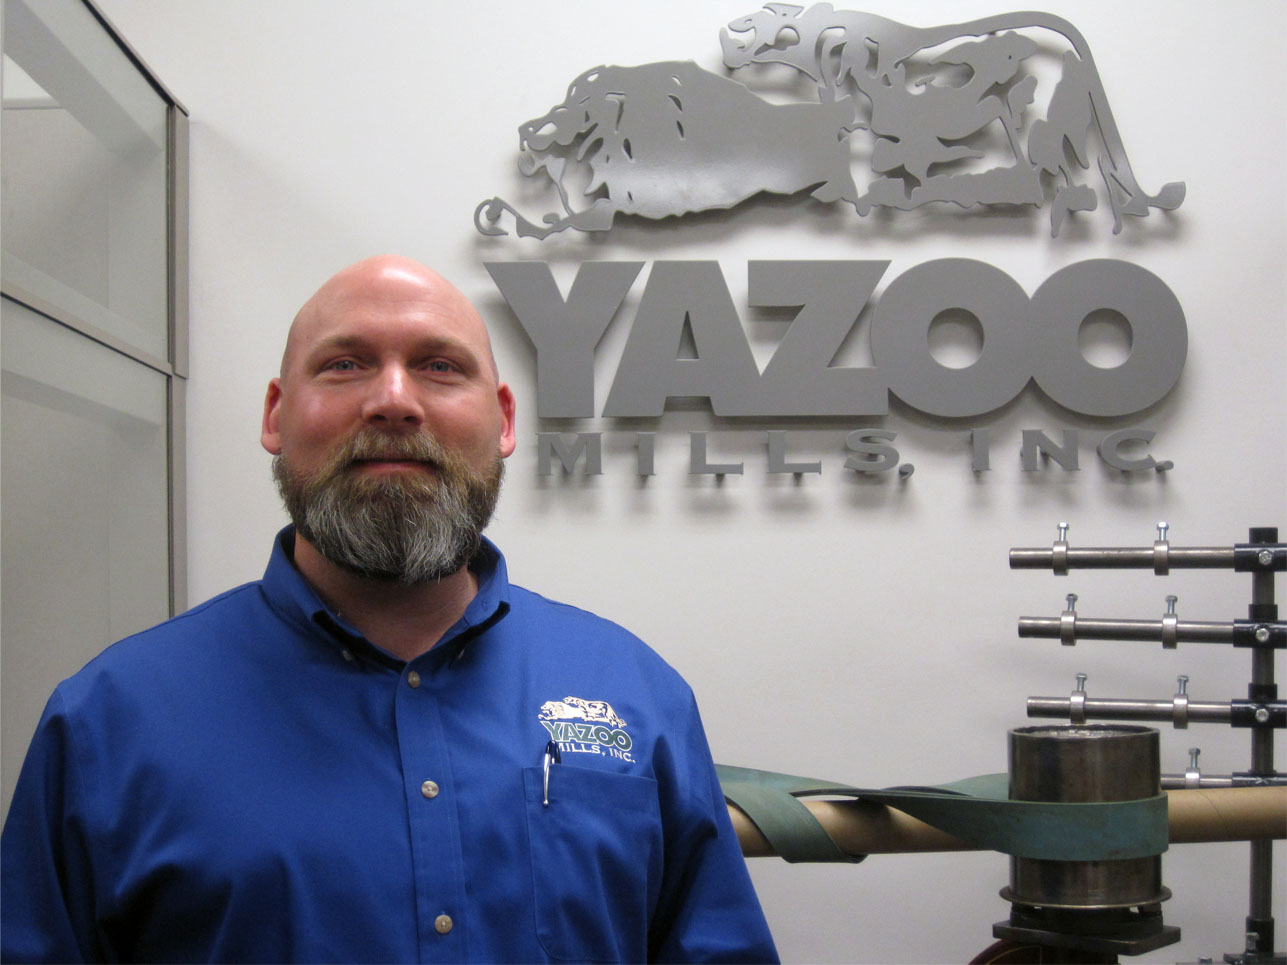 Yazoo Employee Receives A Promotion